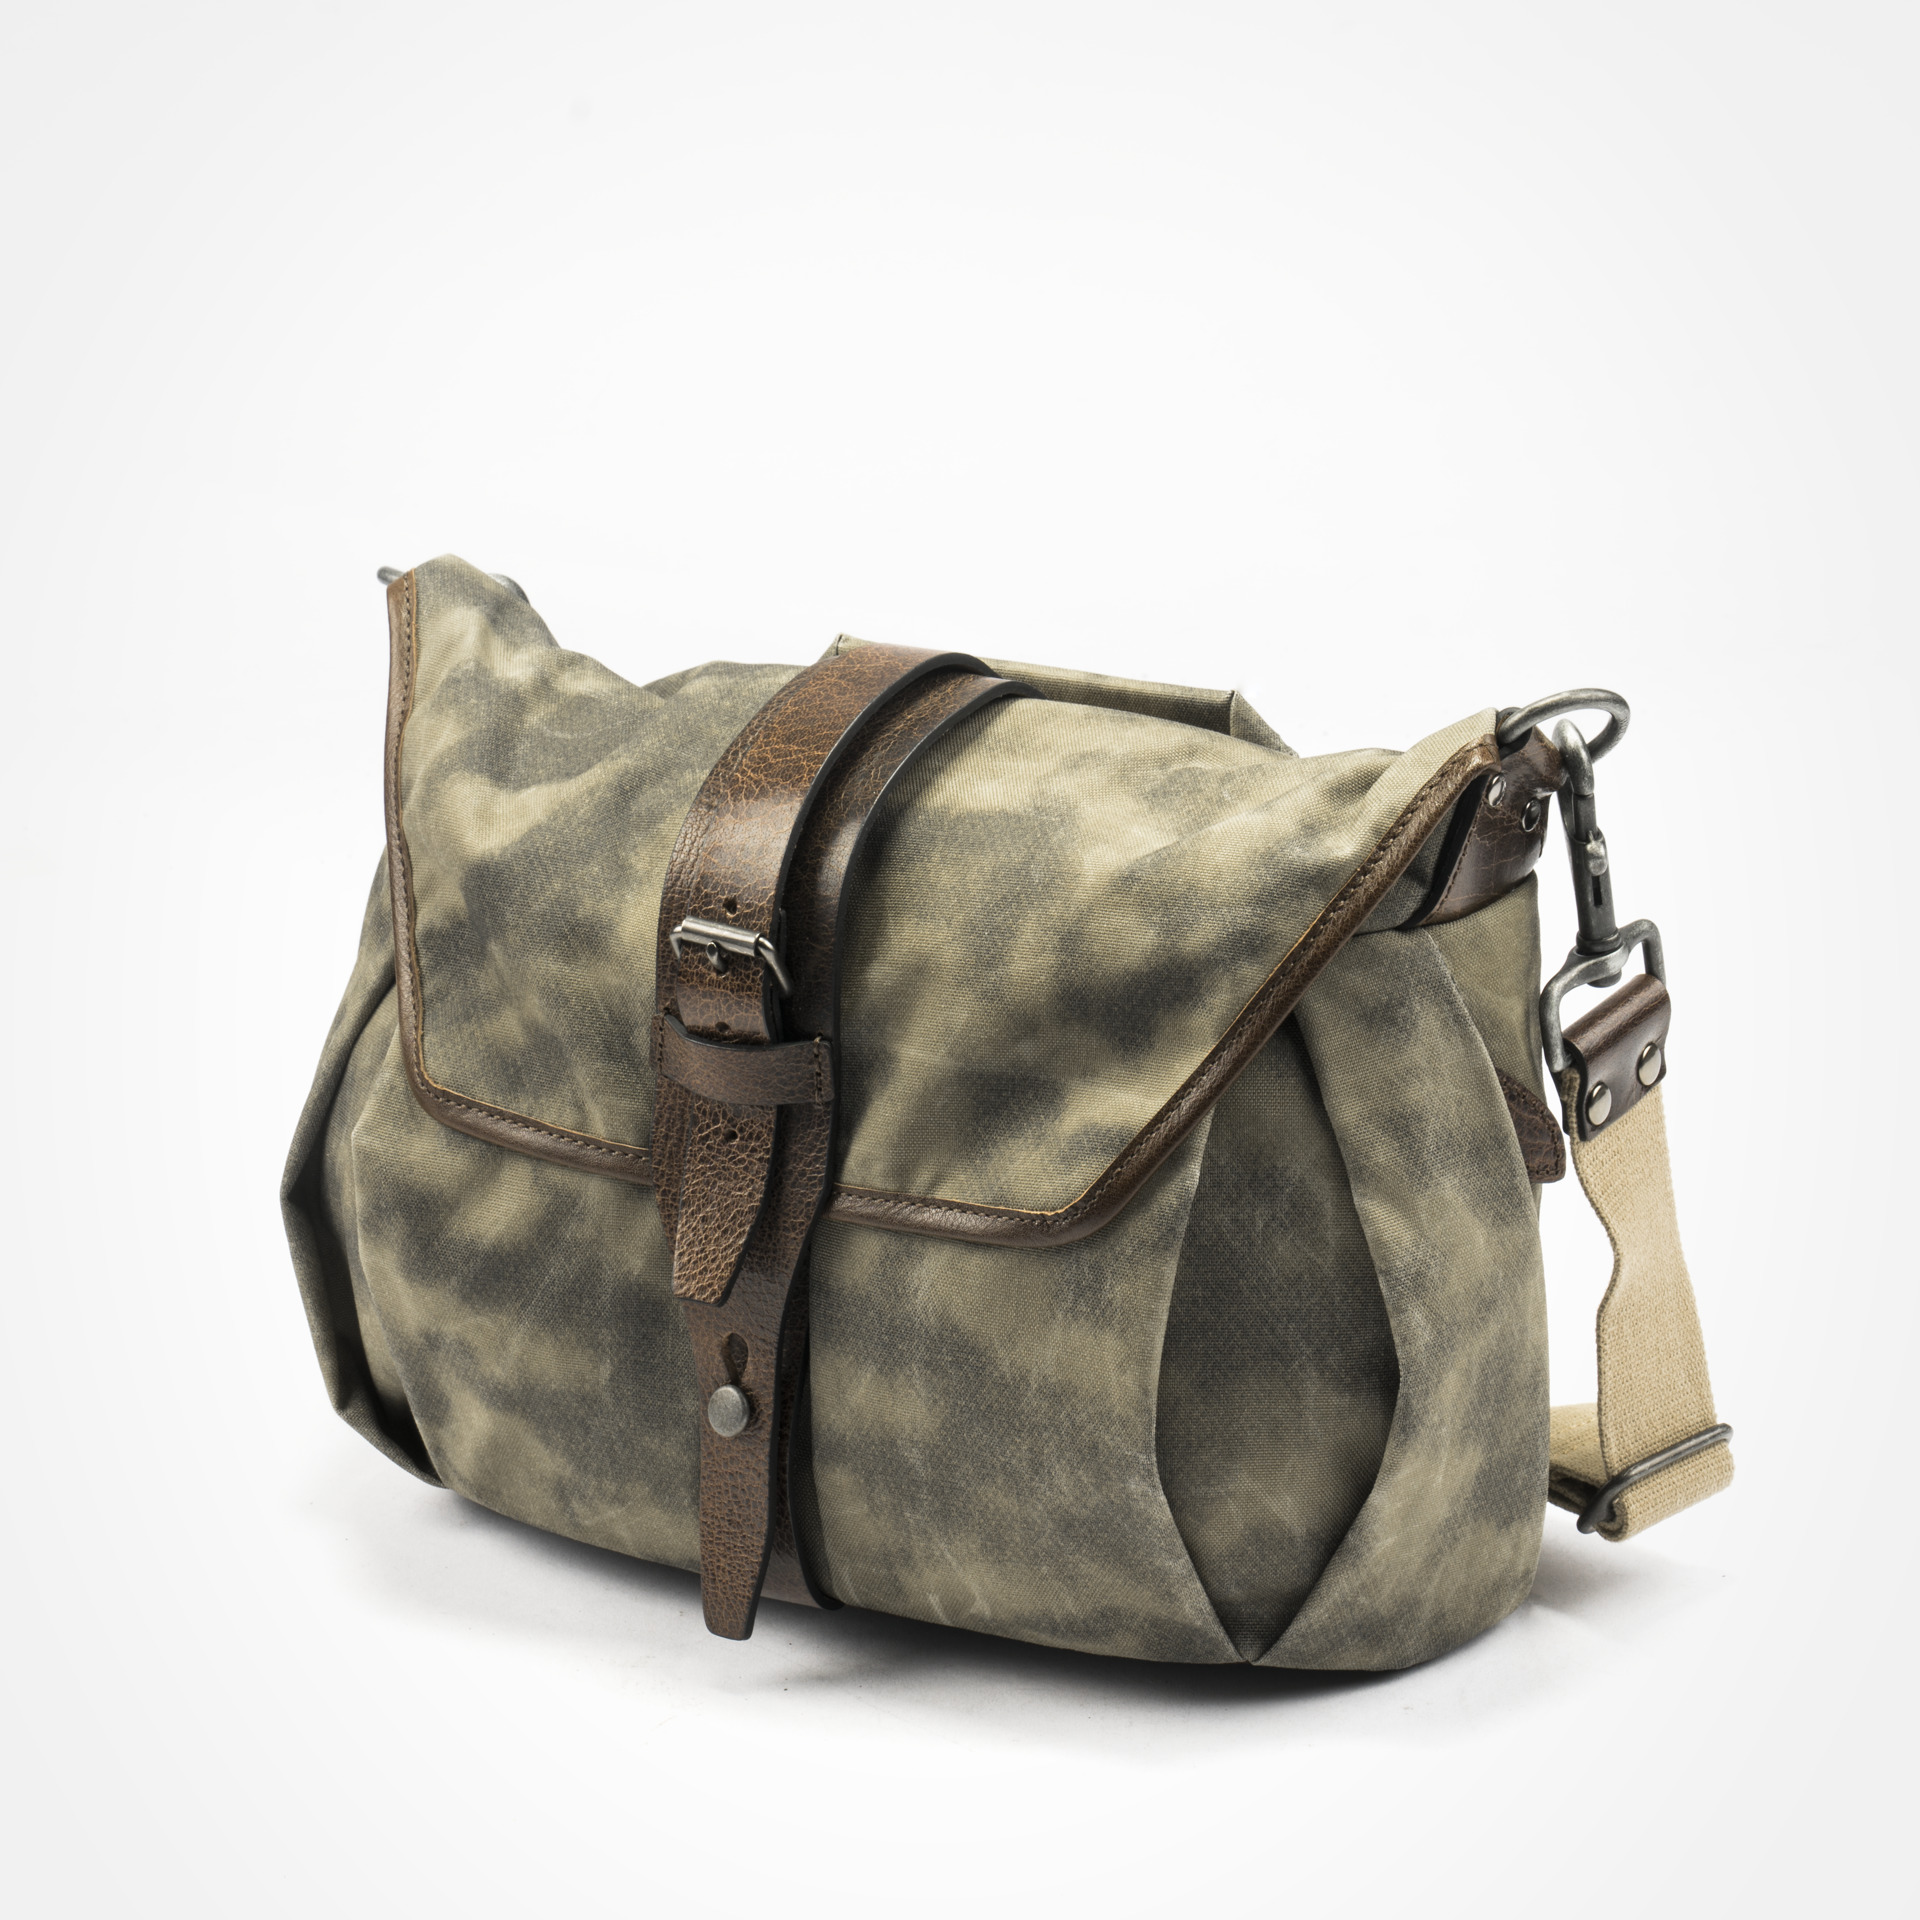 Trooper Camera Bag S Size Handmade Camera Bags Backpacks Daily Bags Watch Straps Wotancraft